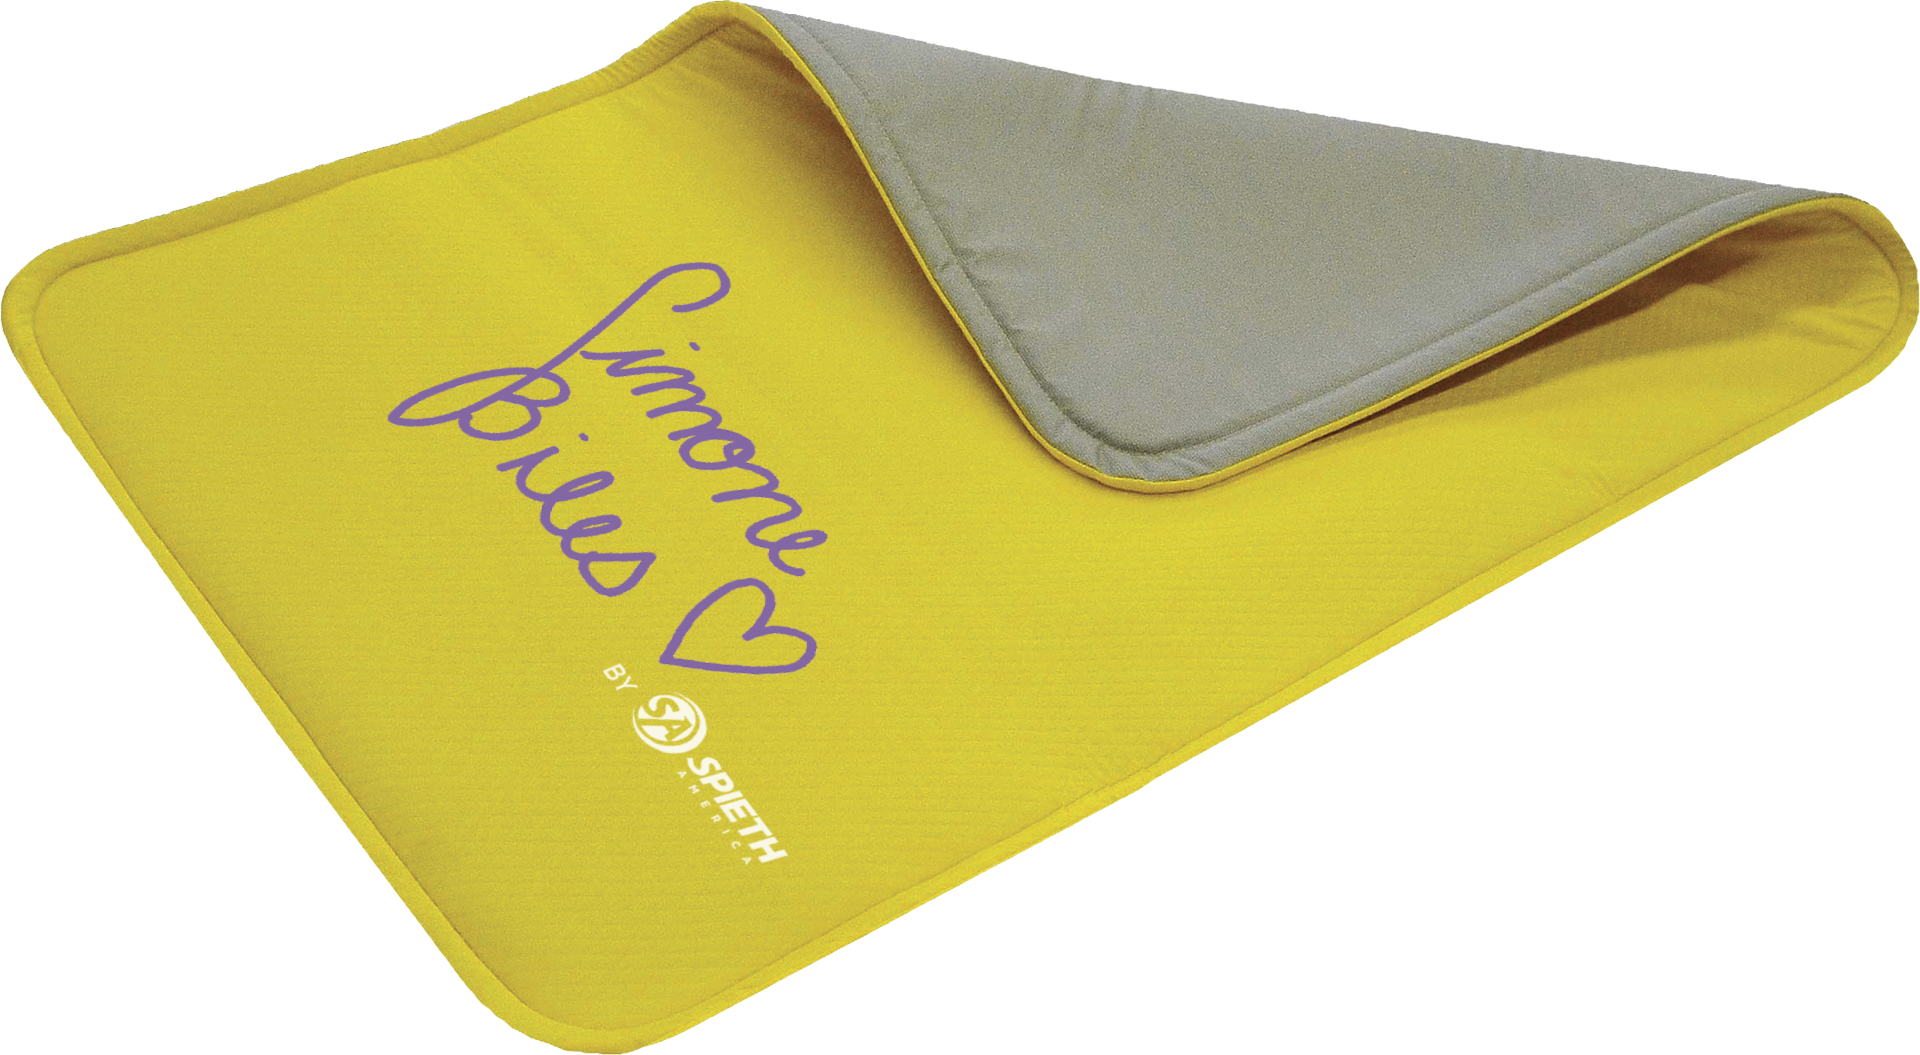 Simone Biles Multi-Purpose Mat